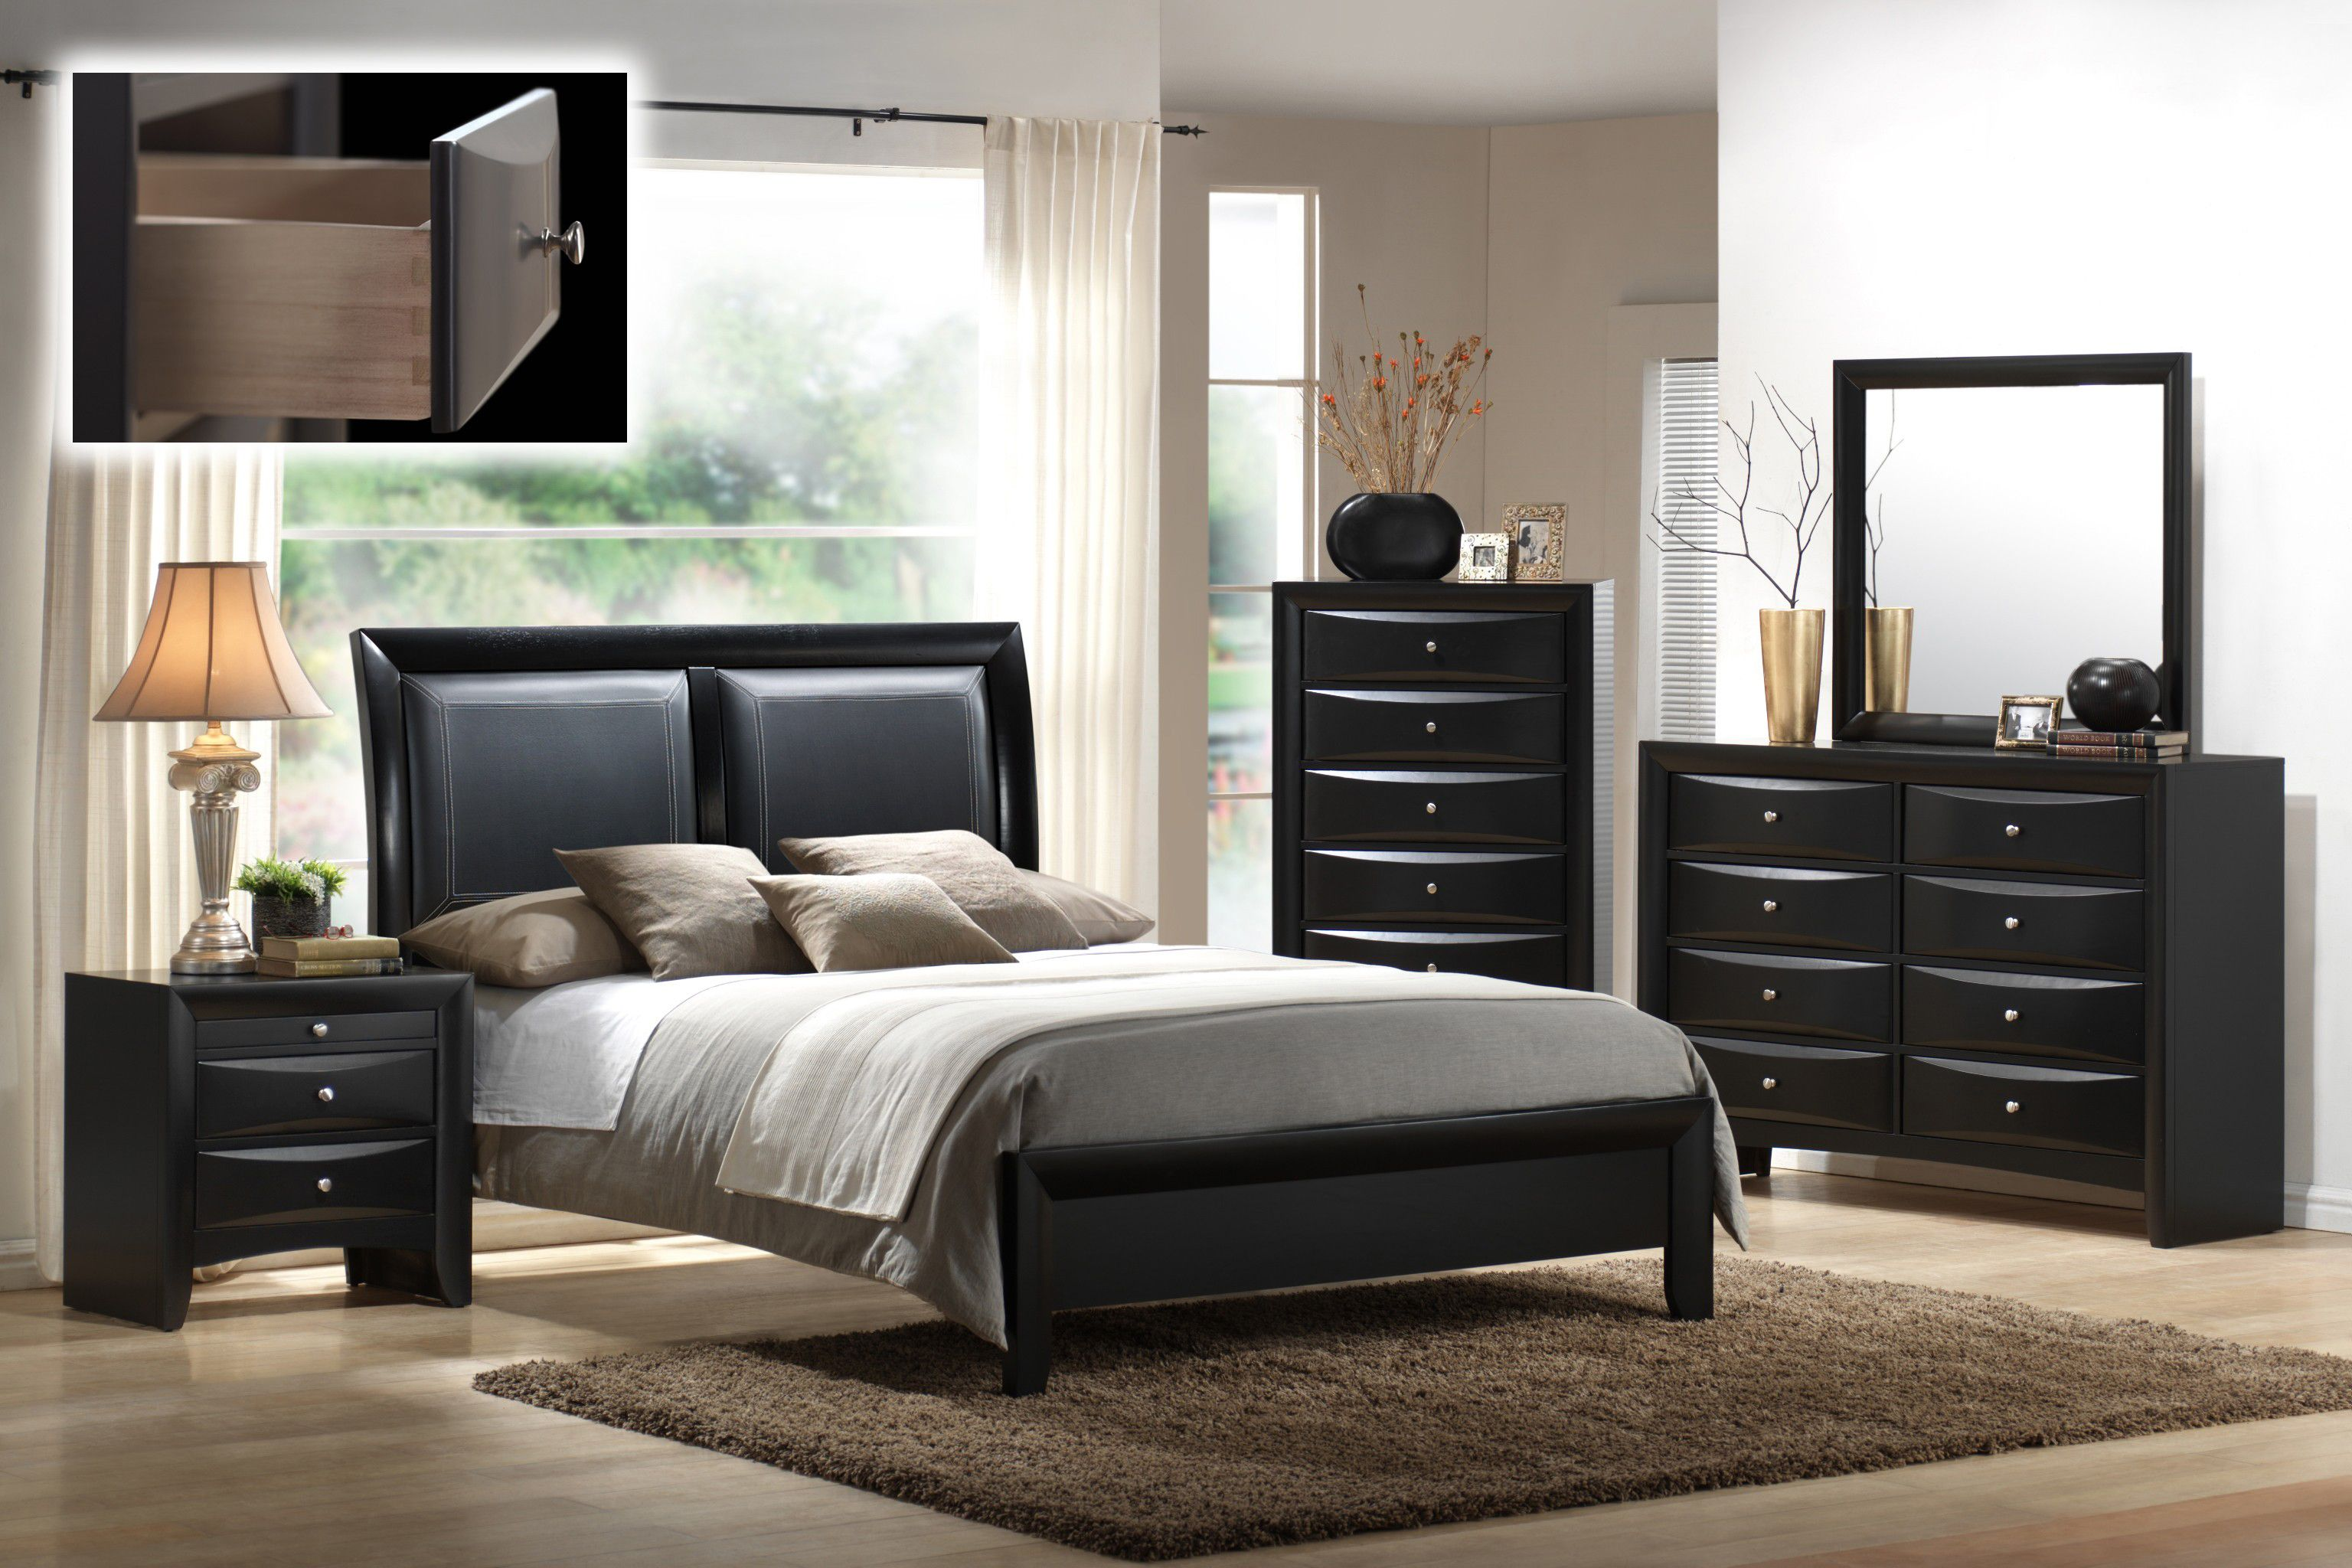 Mollai Collection s Emily 6PC Bedroom Set with Paneled Faux